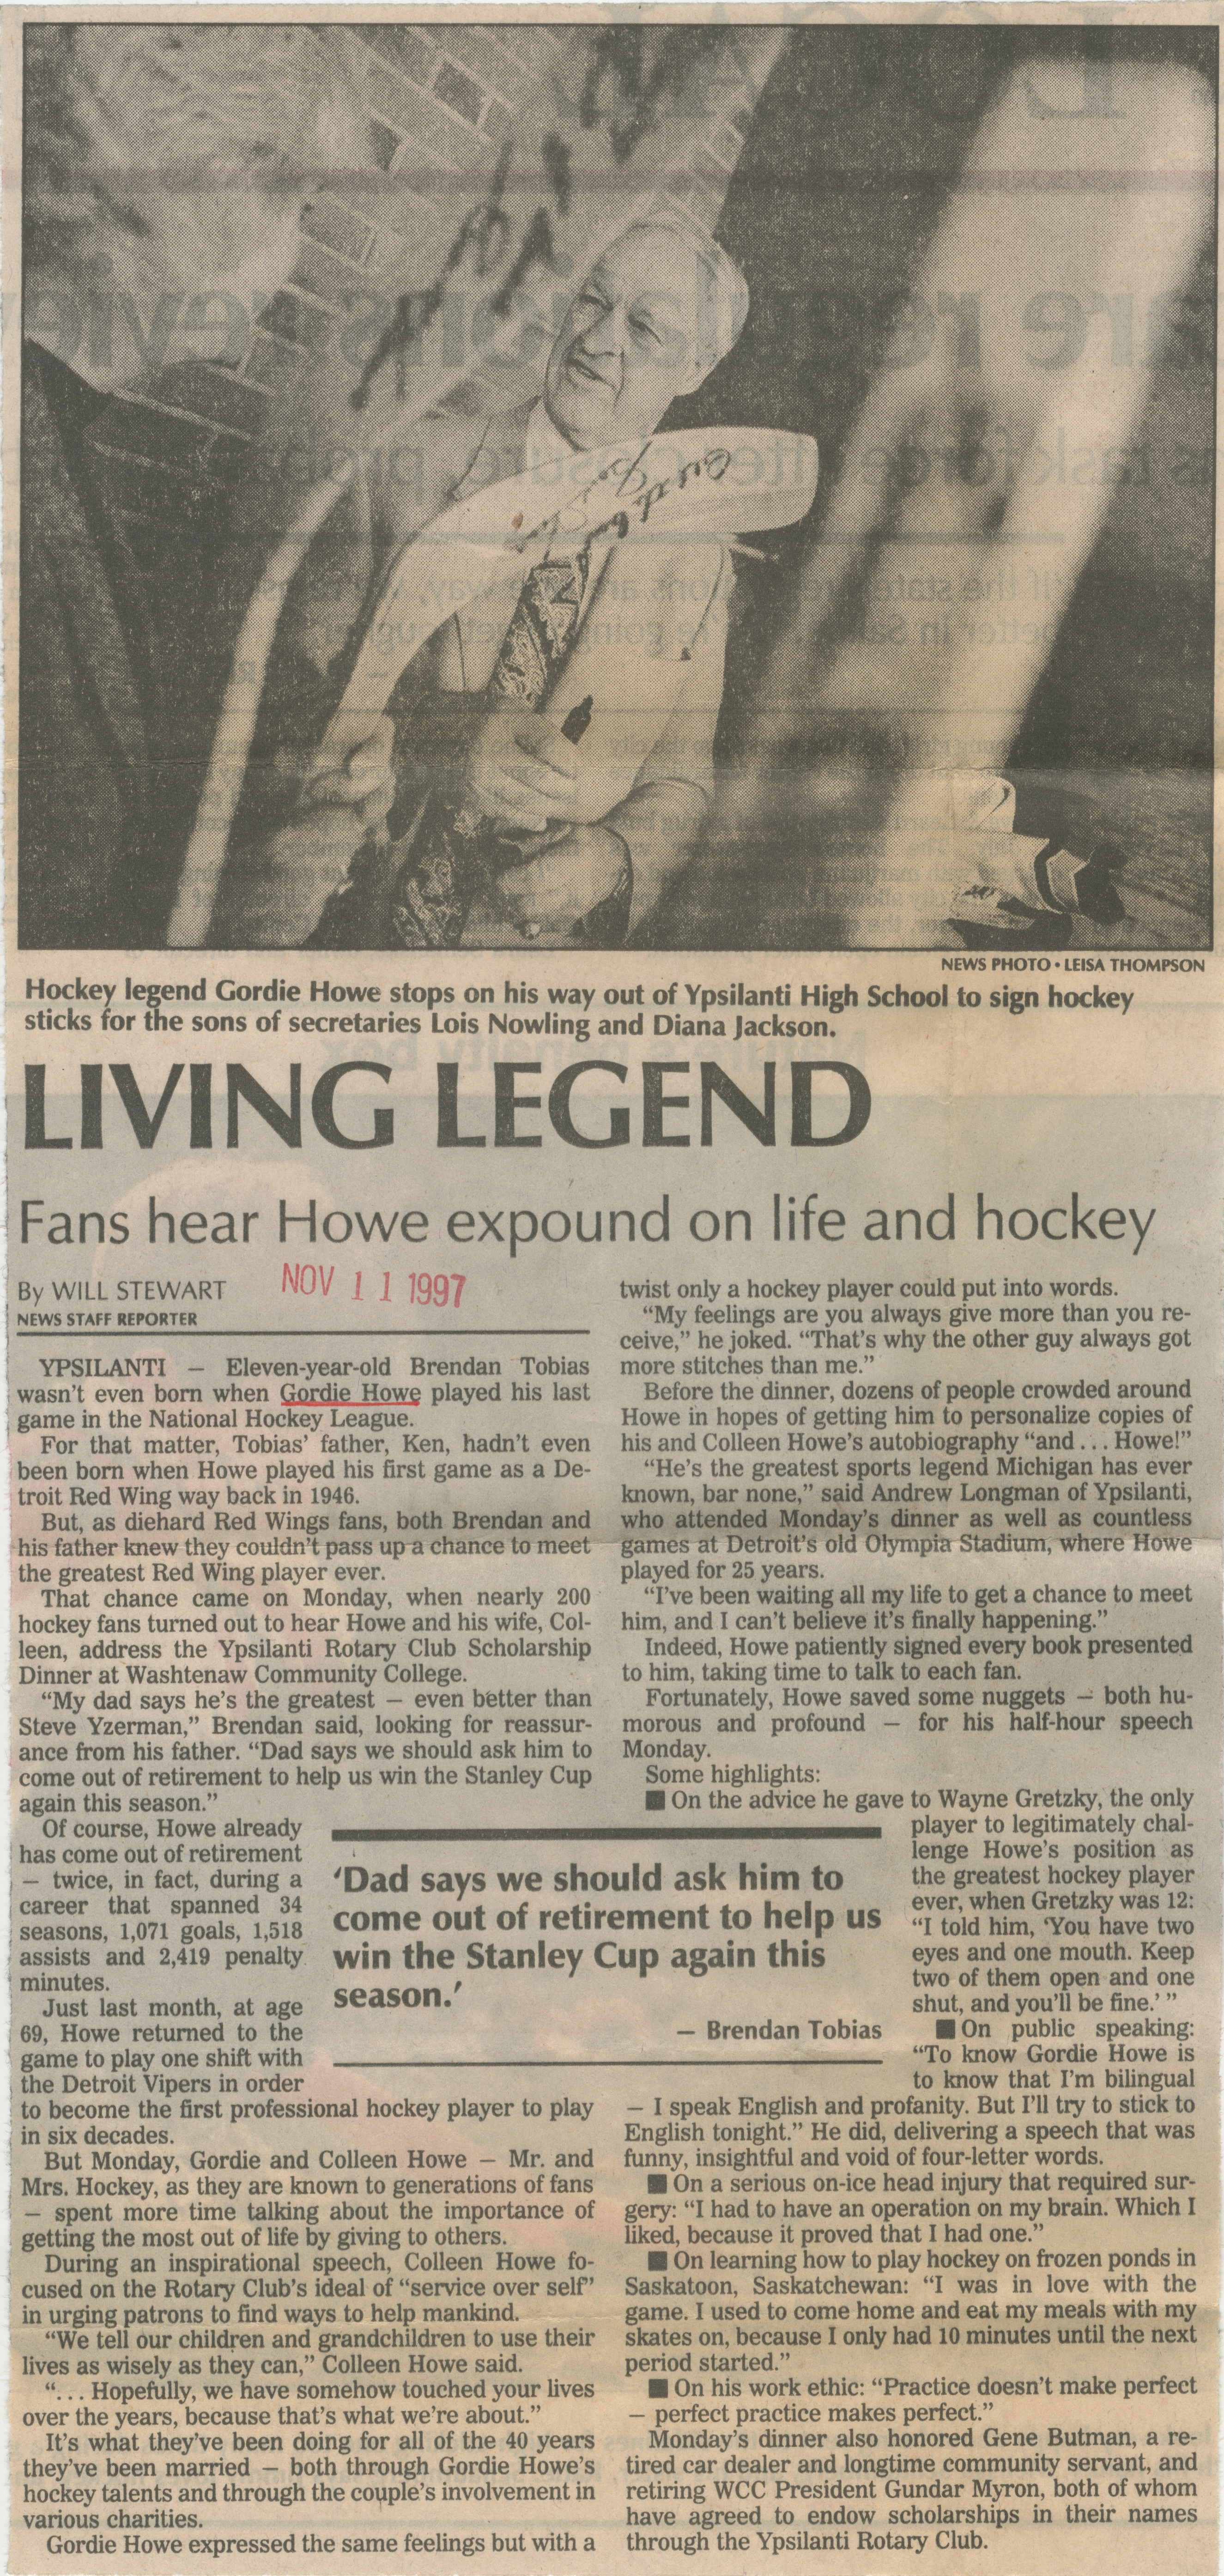 Living Legend - Fans Hear Howe Expound On Life And Hockey image